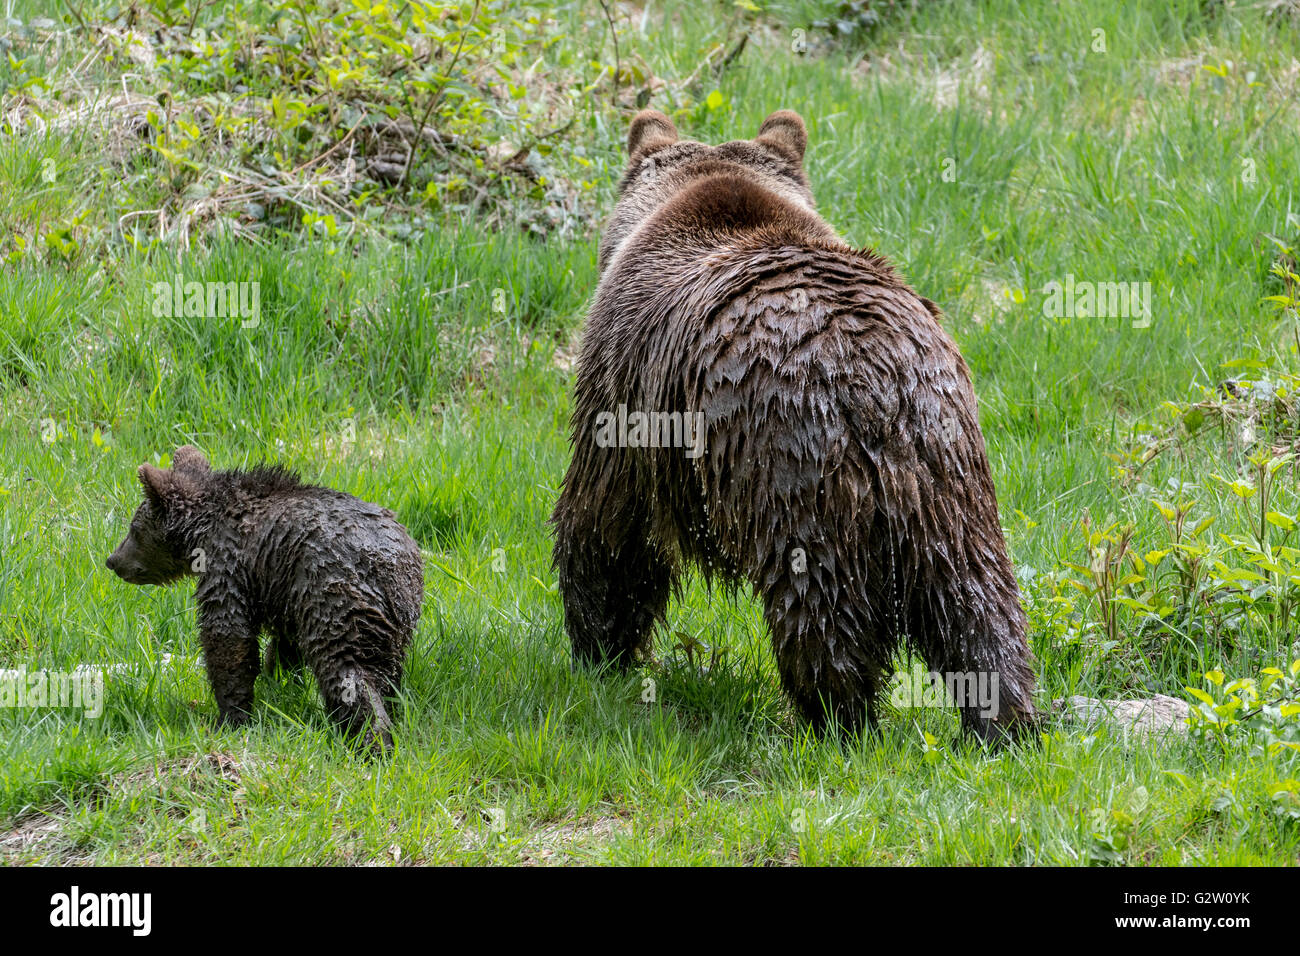 Female brown bear (Ursus arctos) and cub with dripping wet fur walking away in grassland - Stock Image